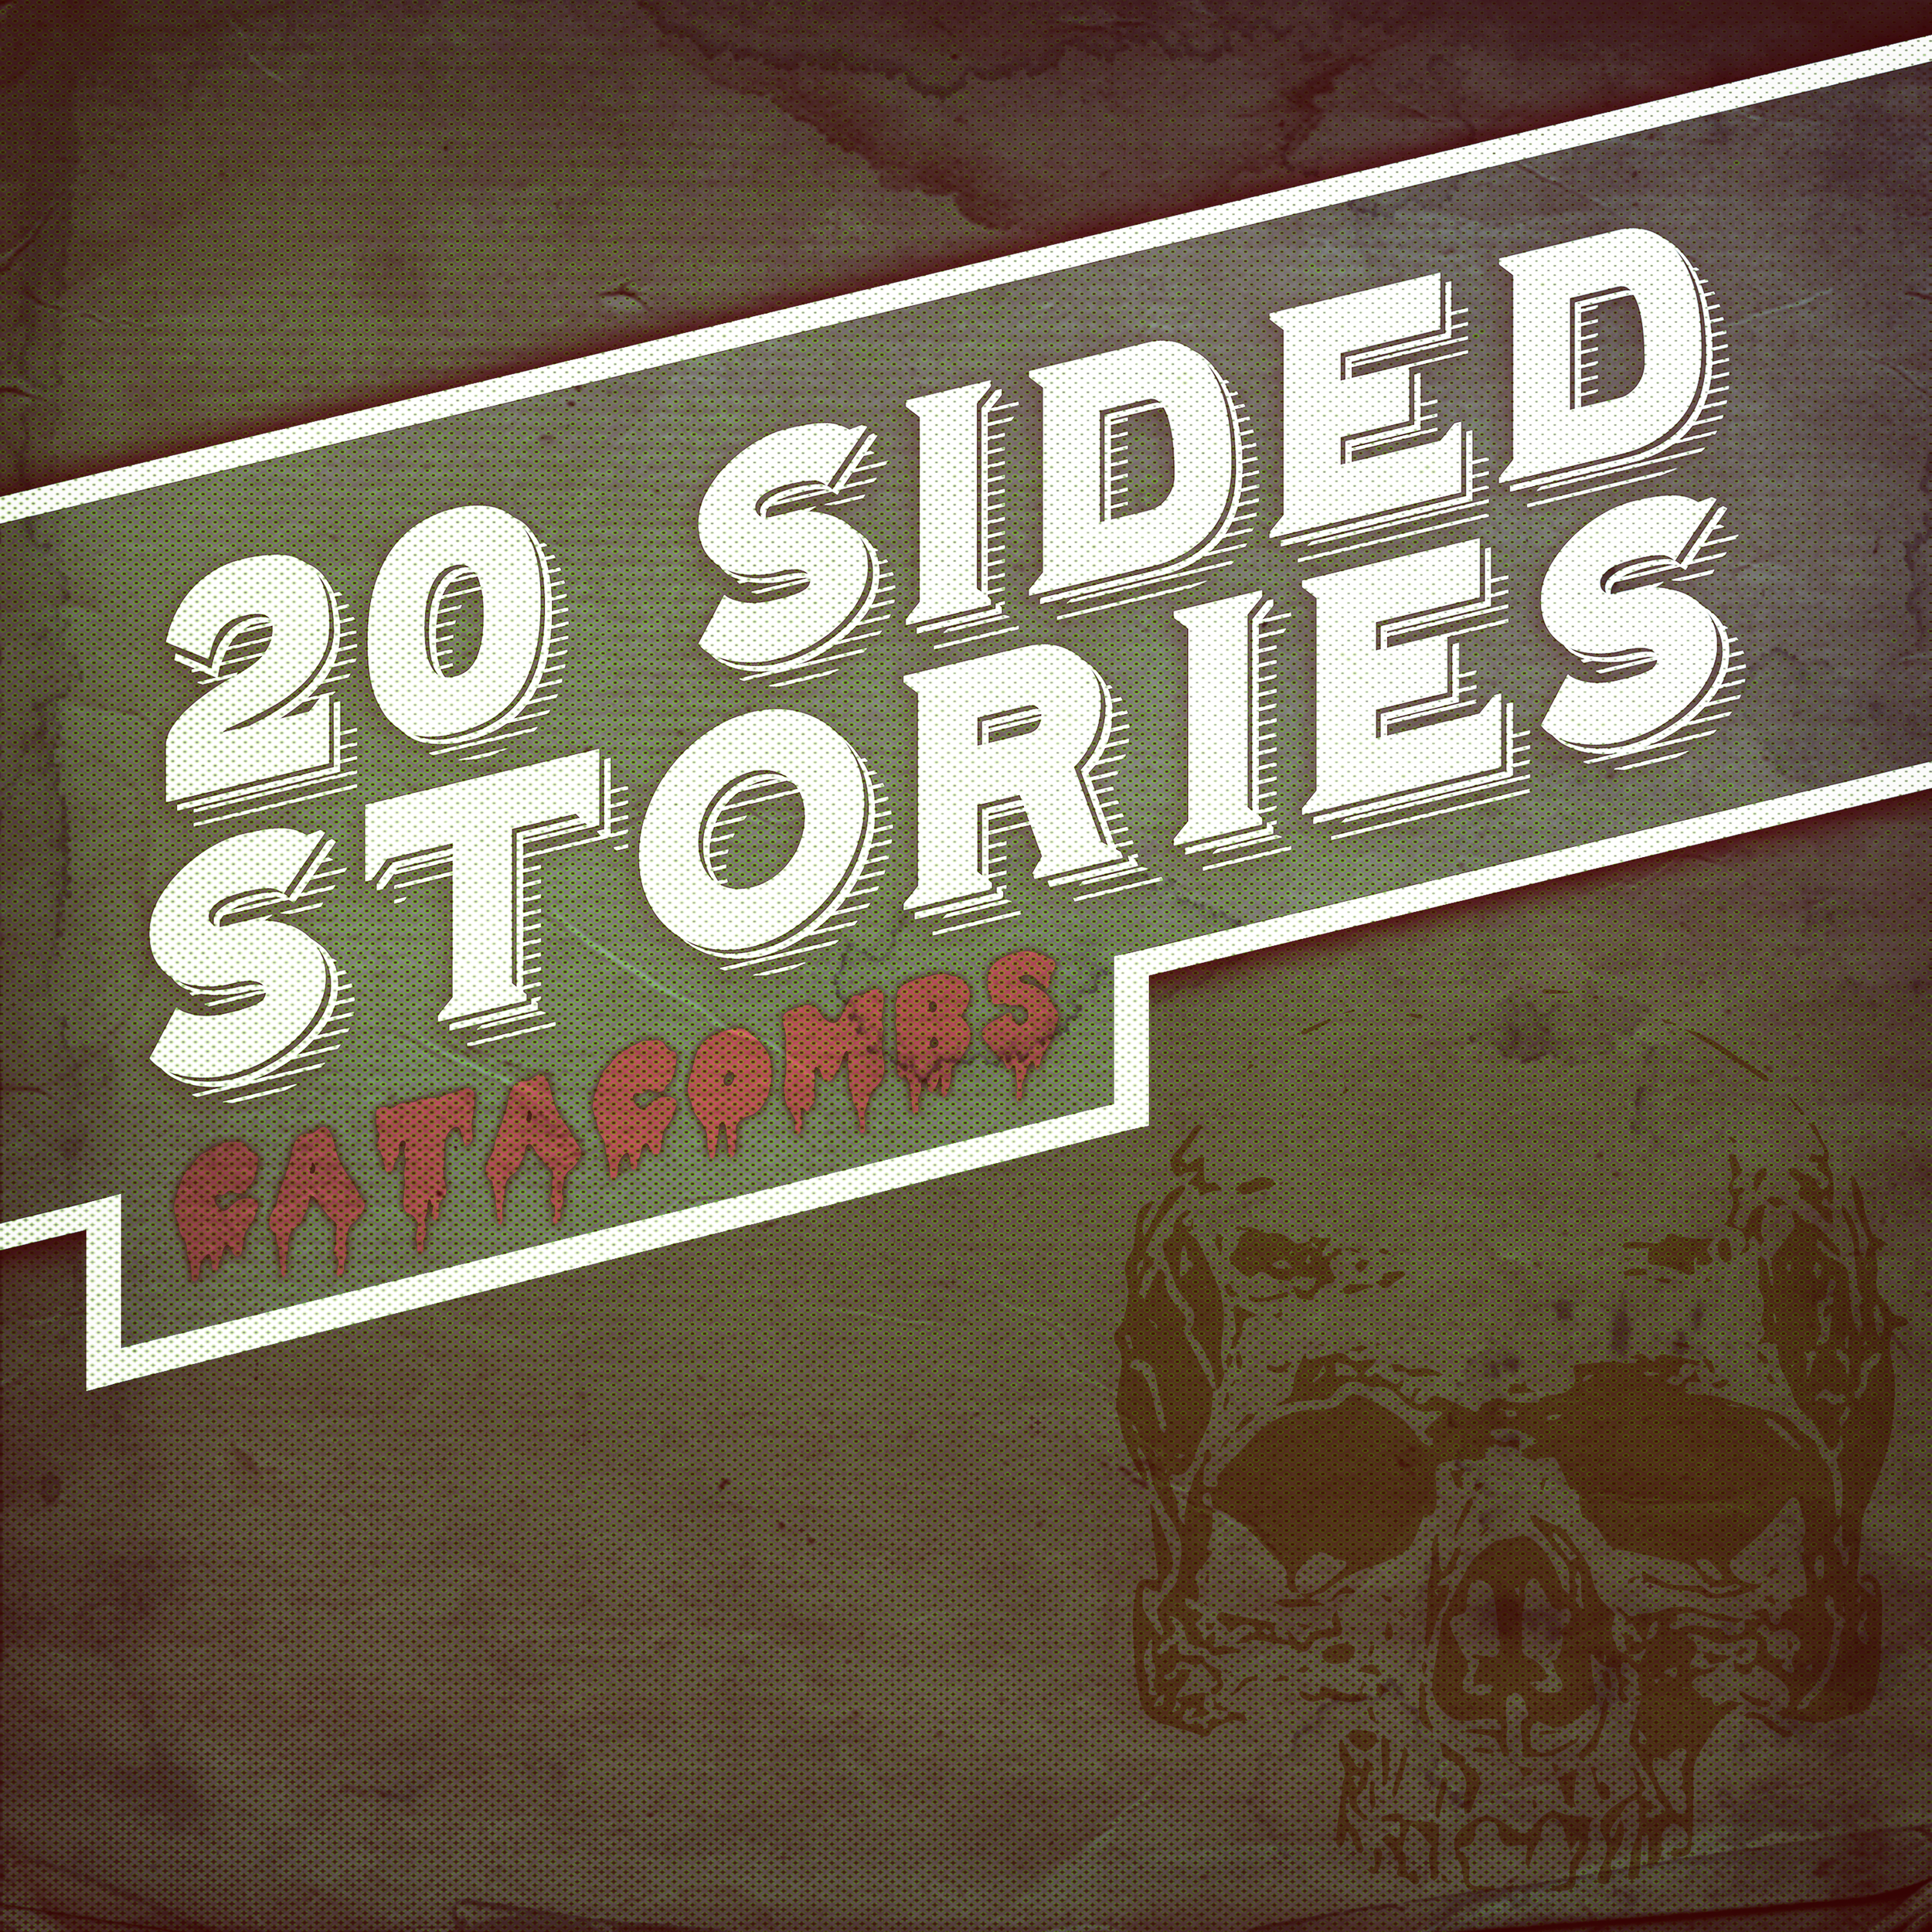 The Catacombs - Our top secret archive of off-shoots, Session Zeros, behind the scenes, character building, random discussions, cut buckets, improv scenes, and even more. This is how you find out who we really are, and what madness goes into making 20 Sided Stories.